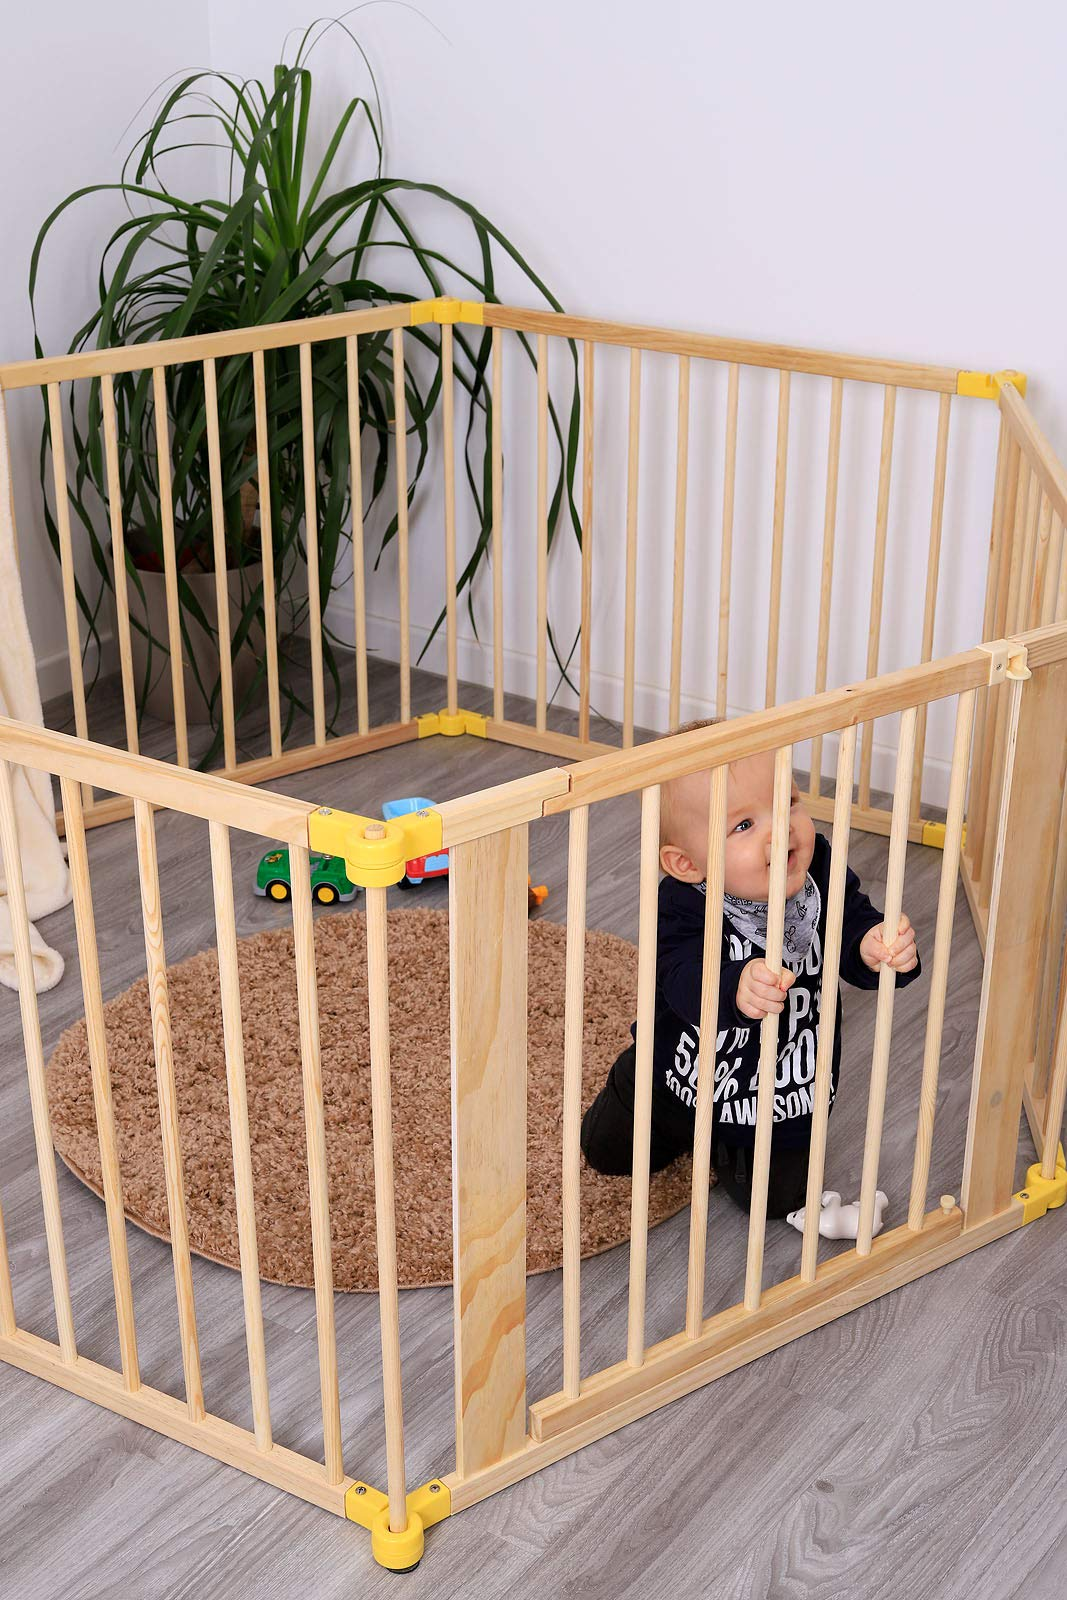 dibea DP00586 Baby Child Playpen, Wood, 270° Foldable incl. Door, 6 Panels Each 90x68cm dibea Wooden playpen with door, height 68 cm, 6 elements (including 1 door) each 90 x 68 cm (L, H). Distance between the single bars about 7, 5 cm 270 ° foldable, lockable form, flexibly usable as a playpen, protective grid, room divider or stair guard Rubber coating under the feet, so that the grid can not be moved by the baby 7